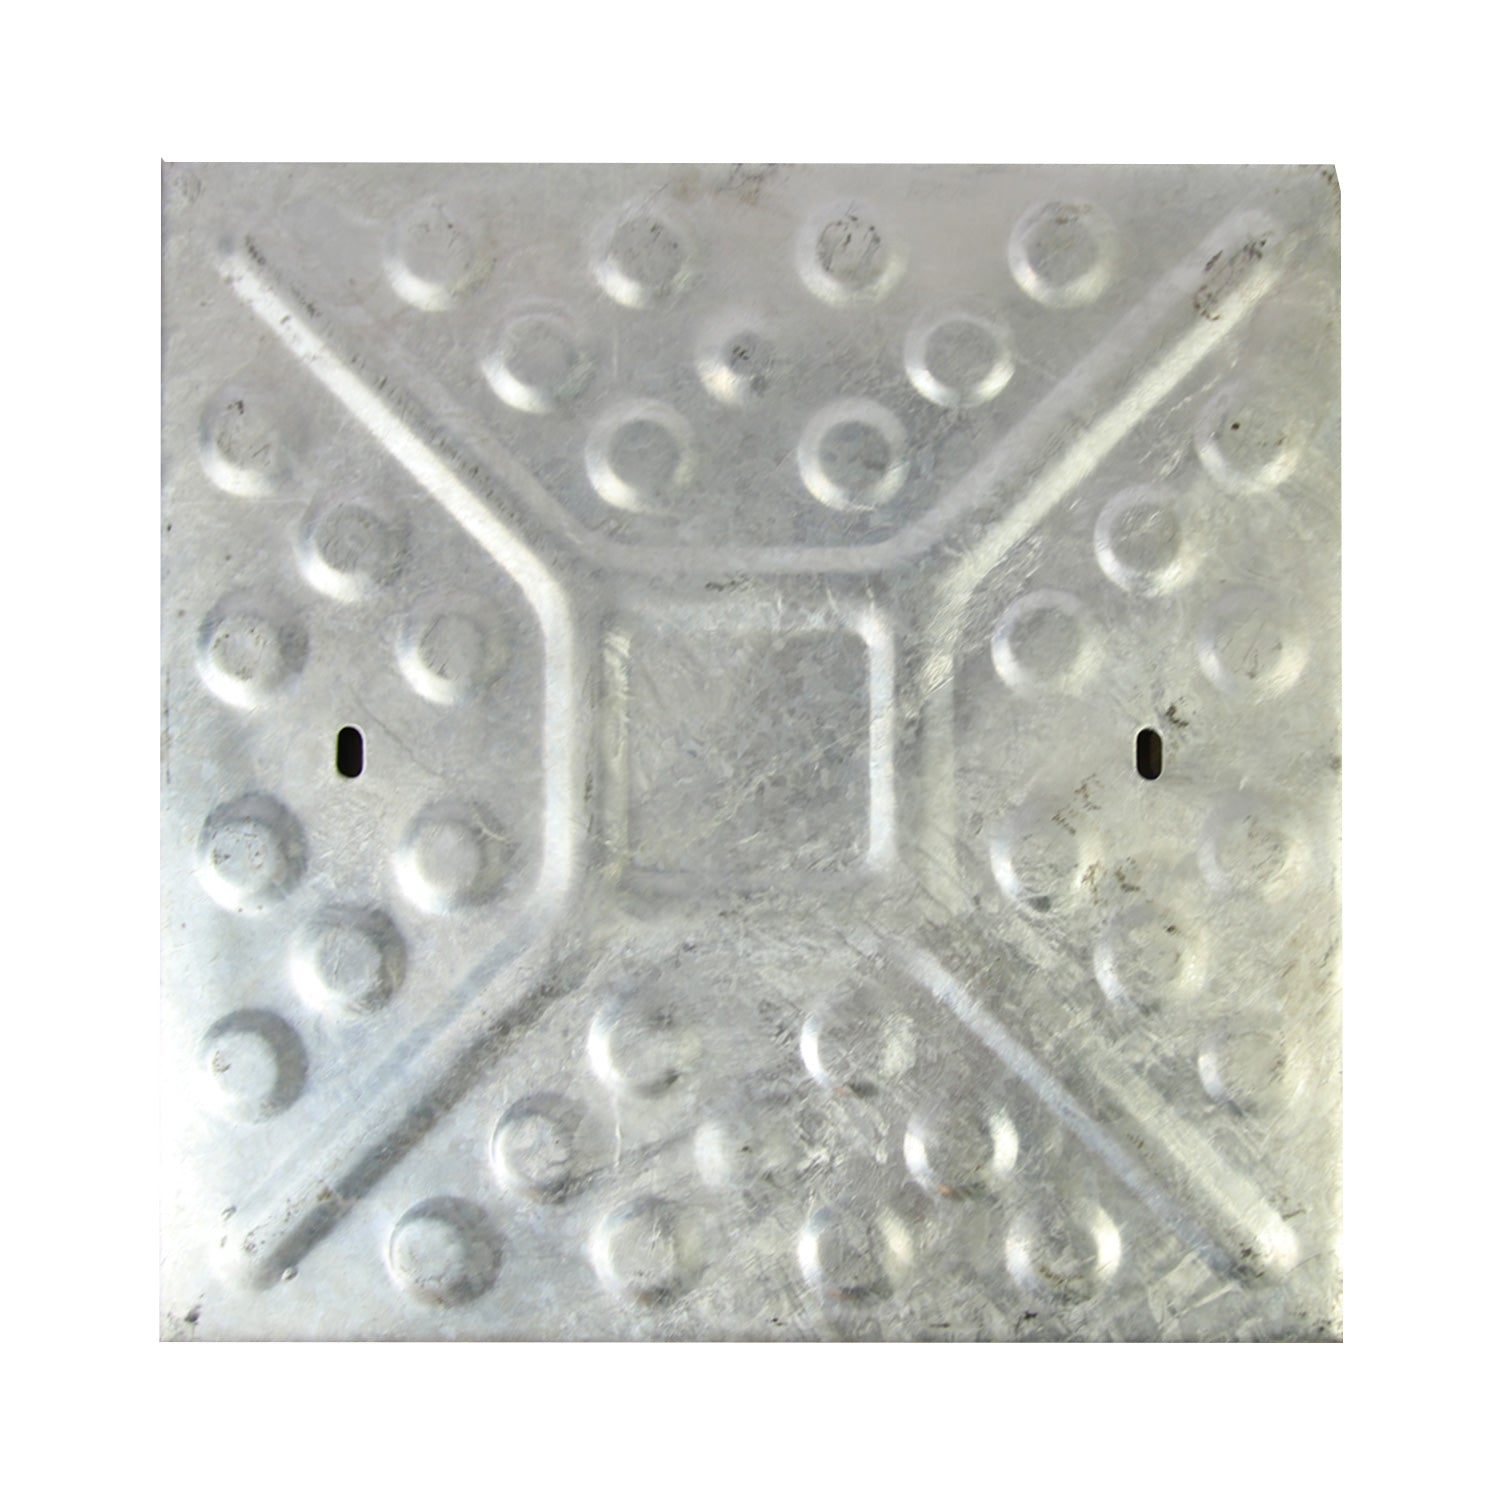 5T Manhole Cover & Frame 600mm x 450mm